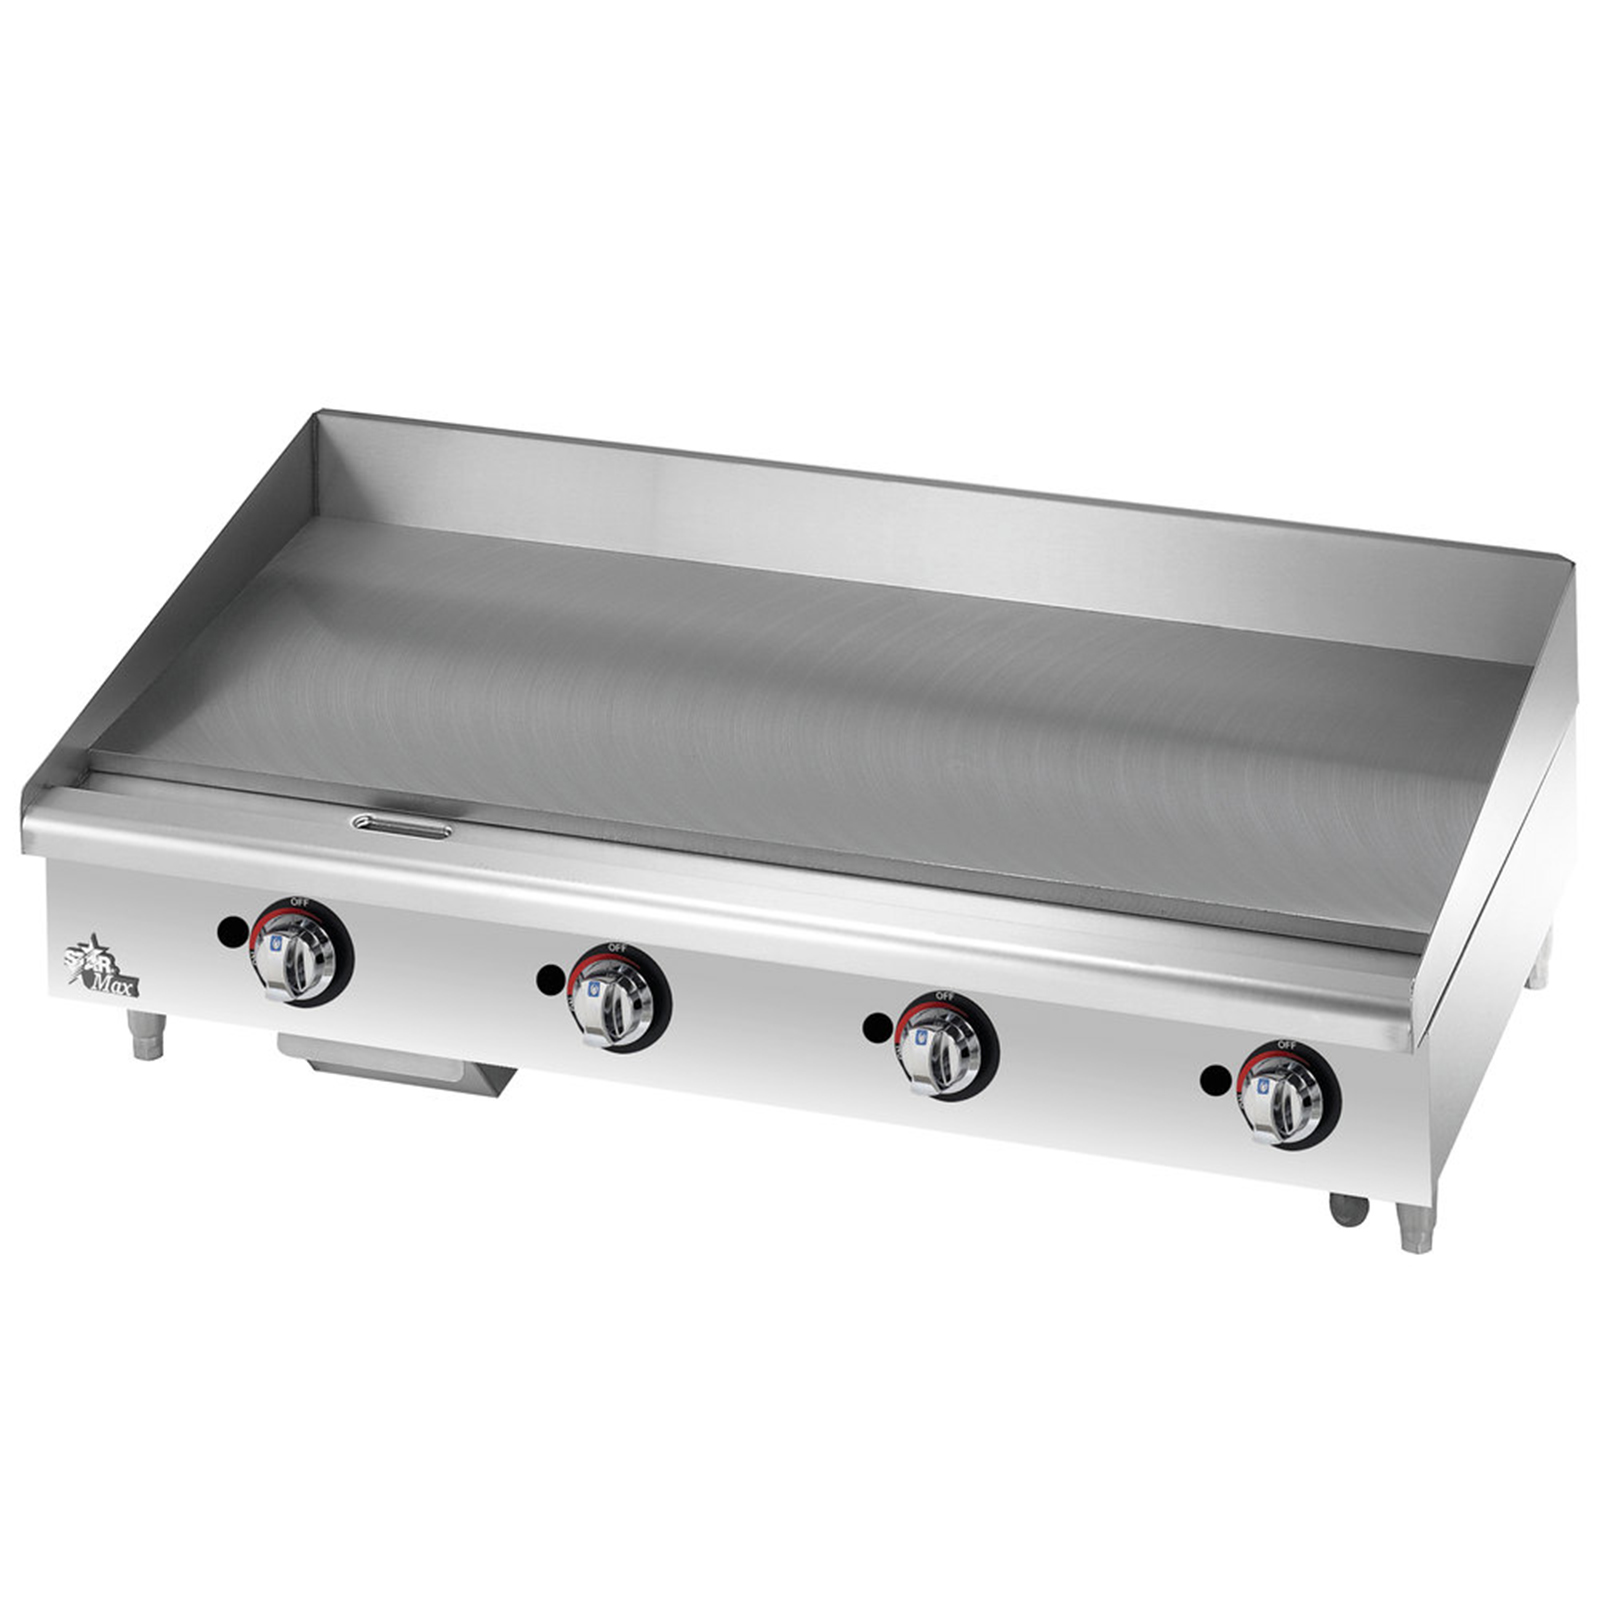 Star 648TF griddle, gas, countertop